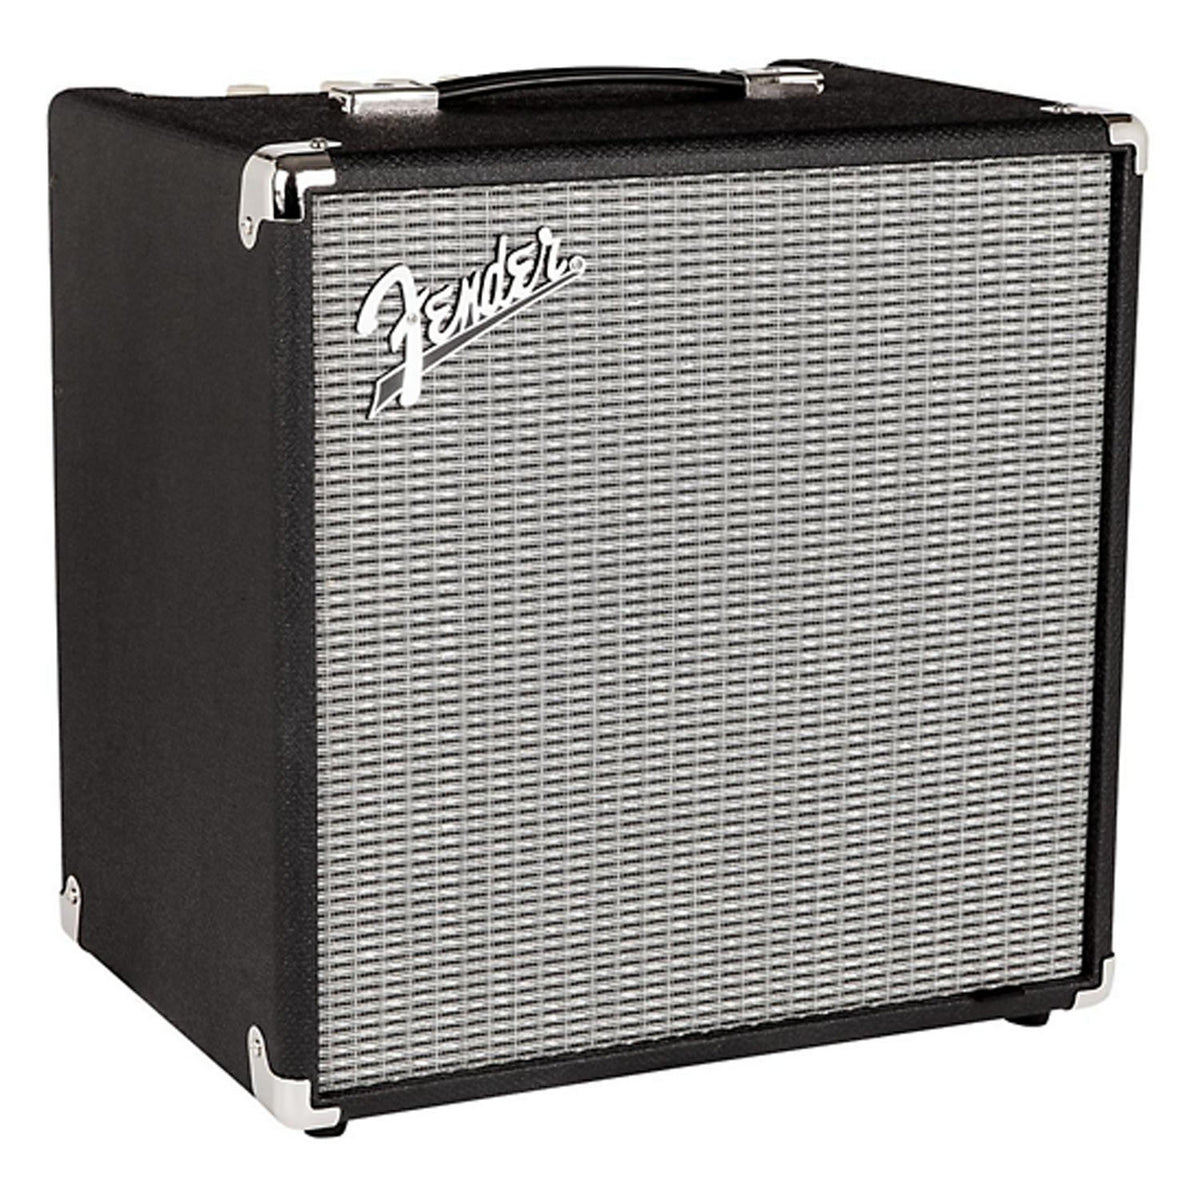 Fender Amp Bass Rumble 40 Black 40W 1X10 - Garrett Park Guitars  - 1